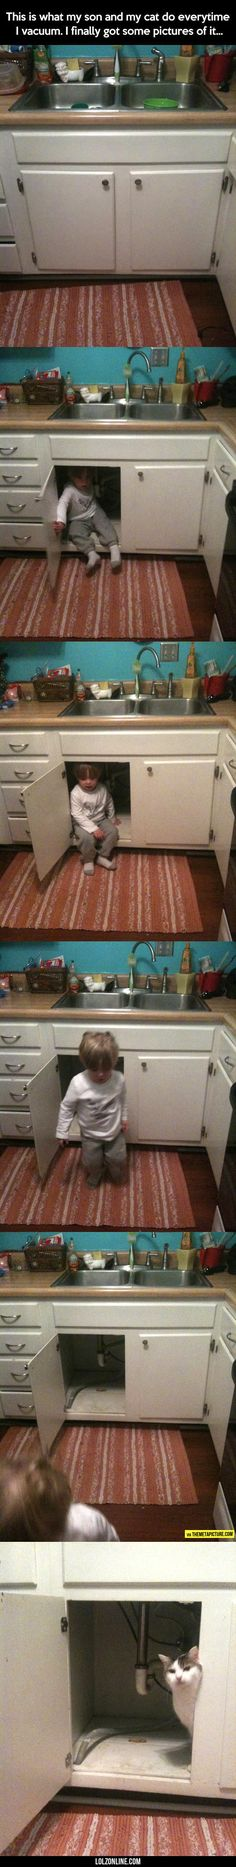 Scared Of The Vacuum#funny #lol #lolzonline